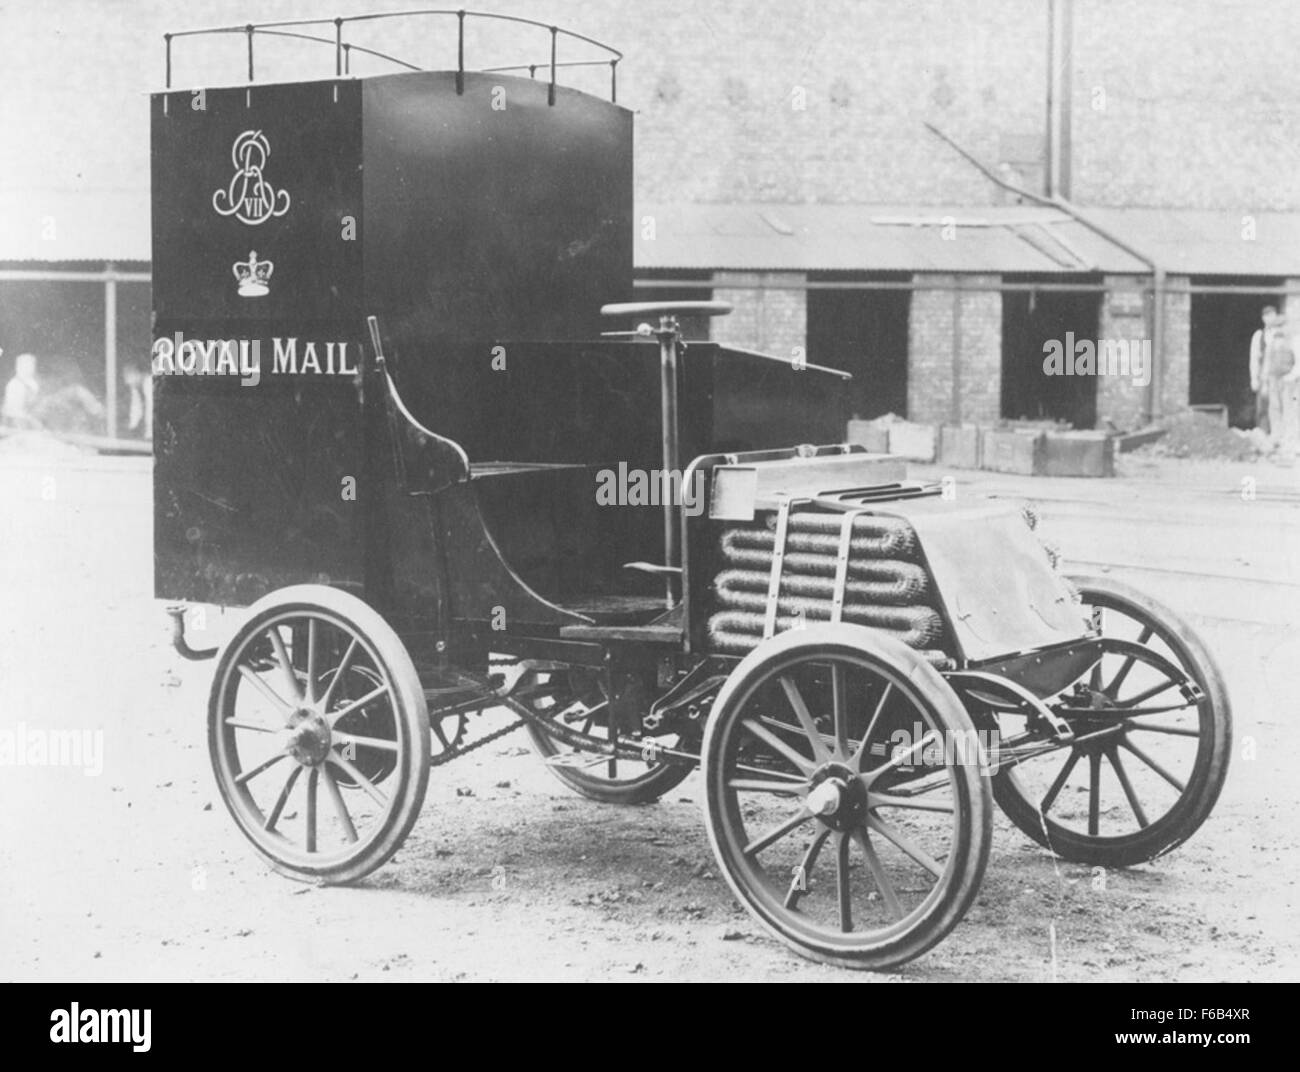 Royal Mail van built at the Scotswood Works - Stock Image